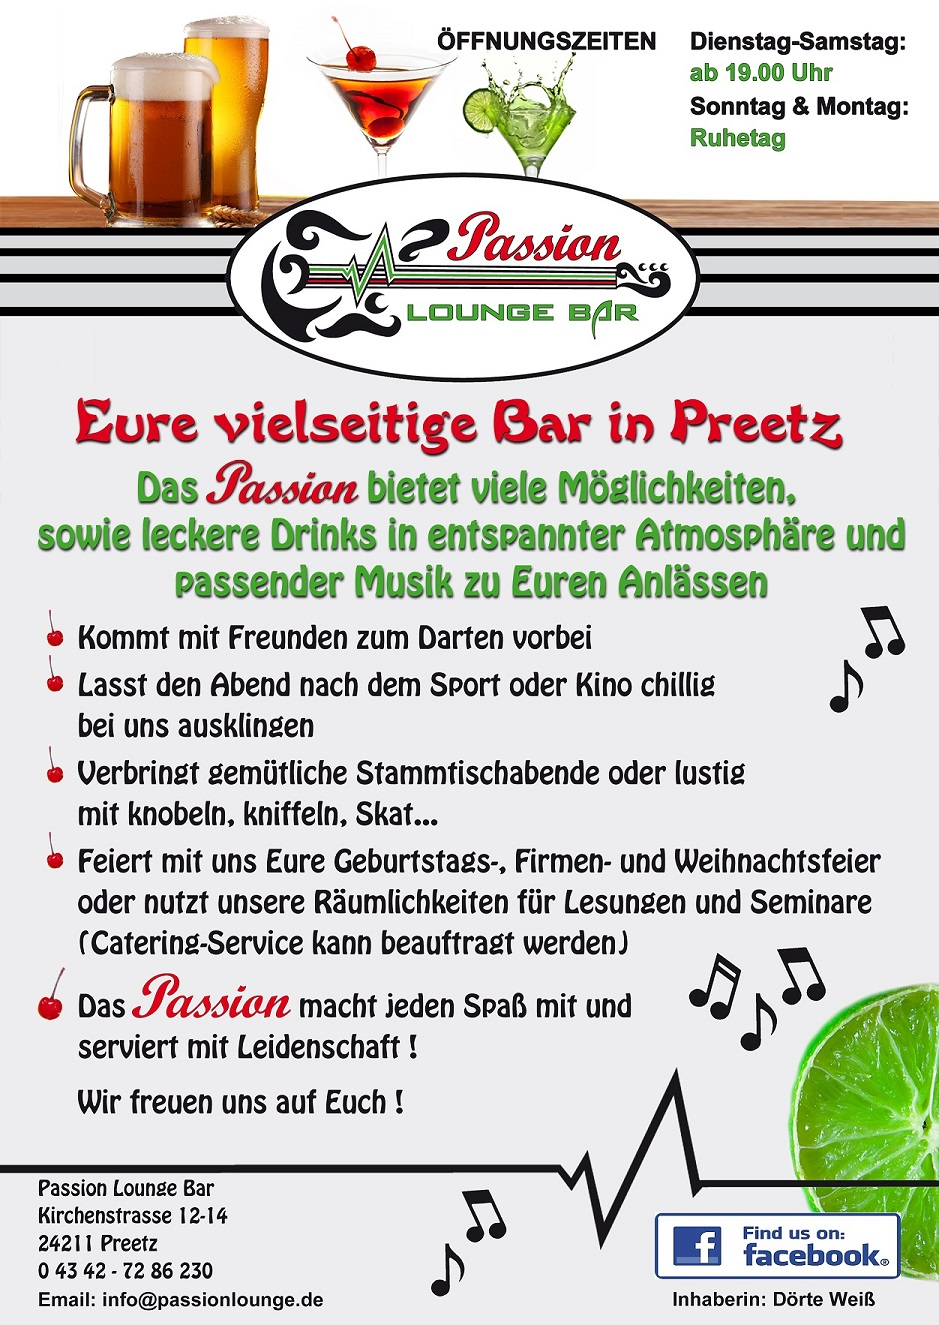 laden/preetz/passion-lounge-bar/passion-eure-bar.jpg